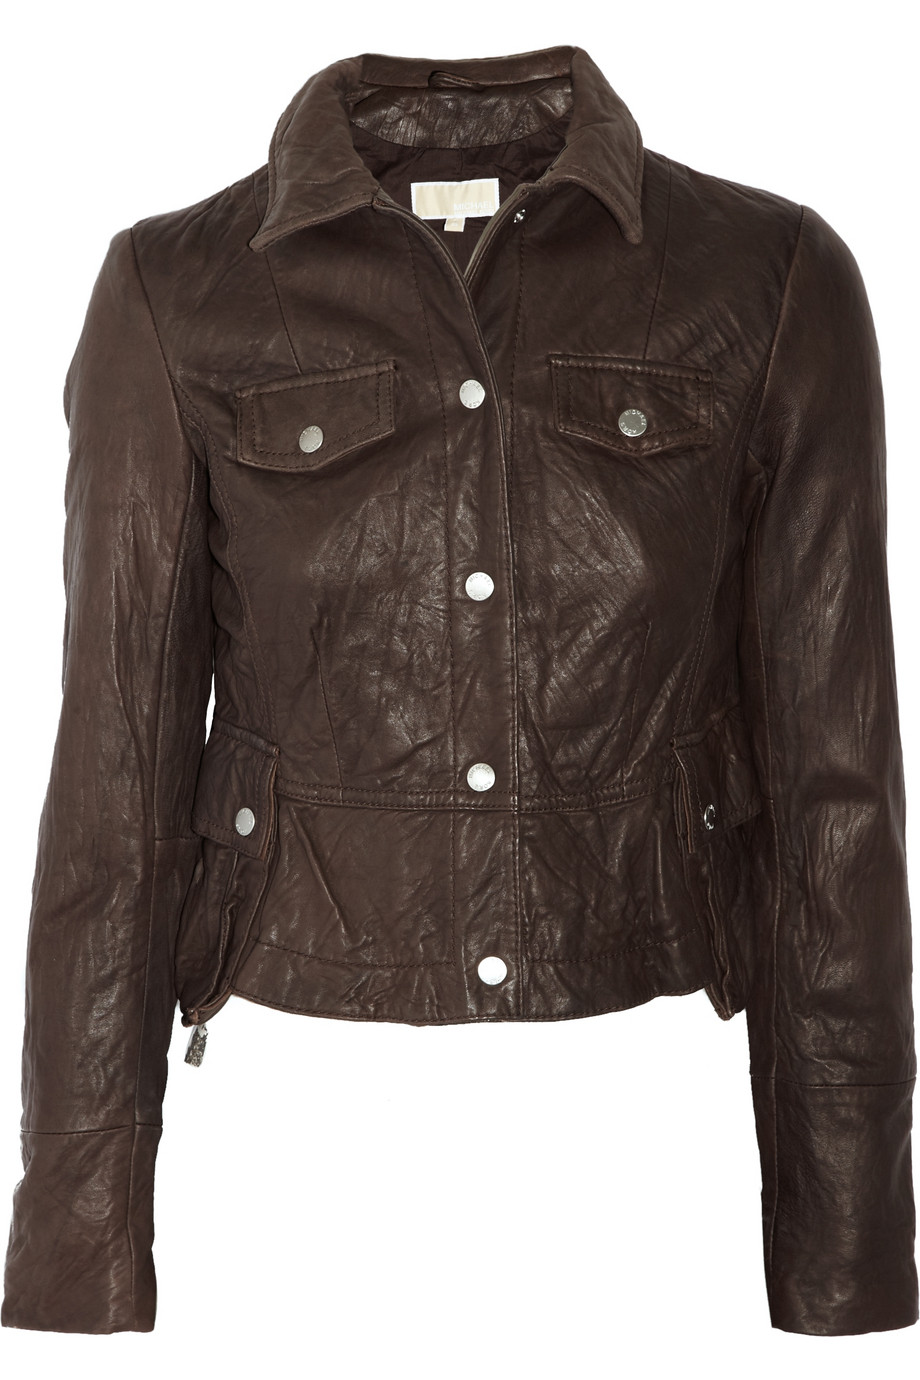 michael by michael kors cropped leather jacket in brown gray lyst. Black Bedroom Furniture Sets. Home Design Ideas